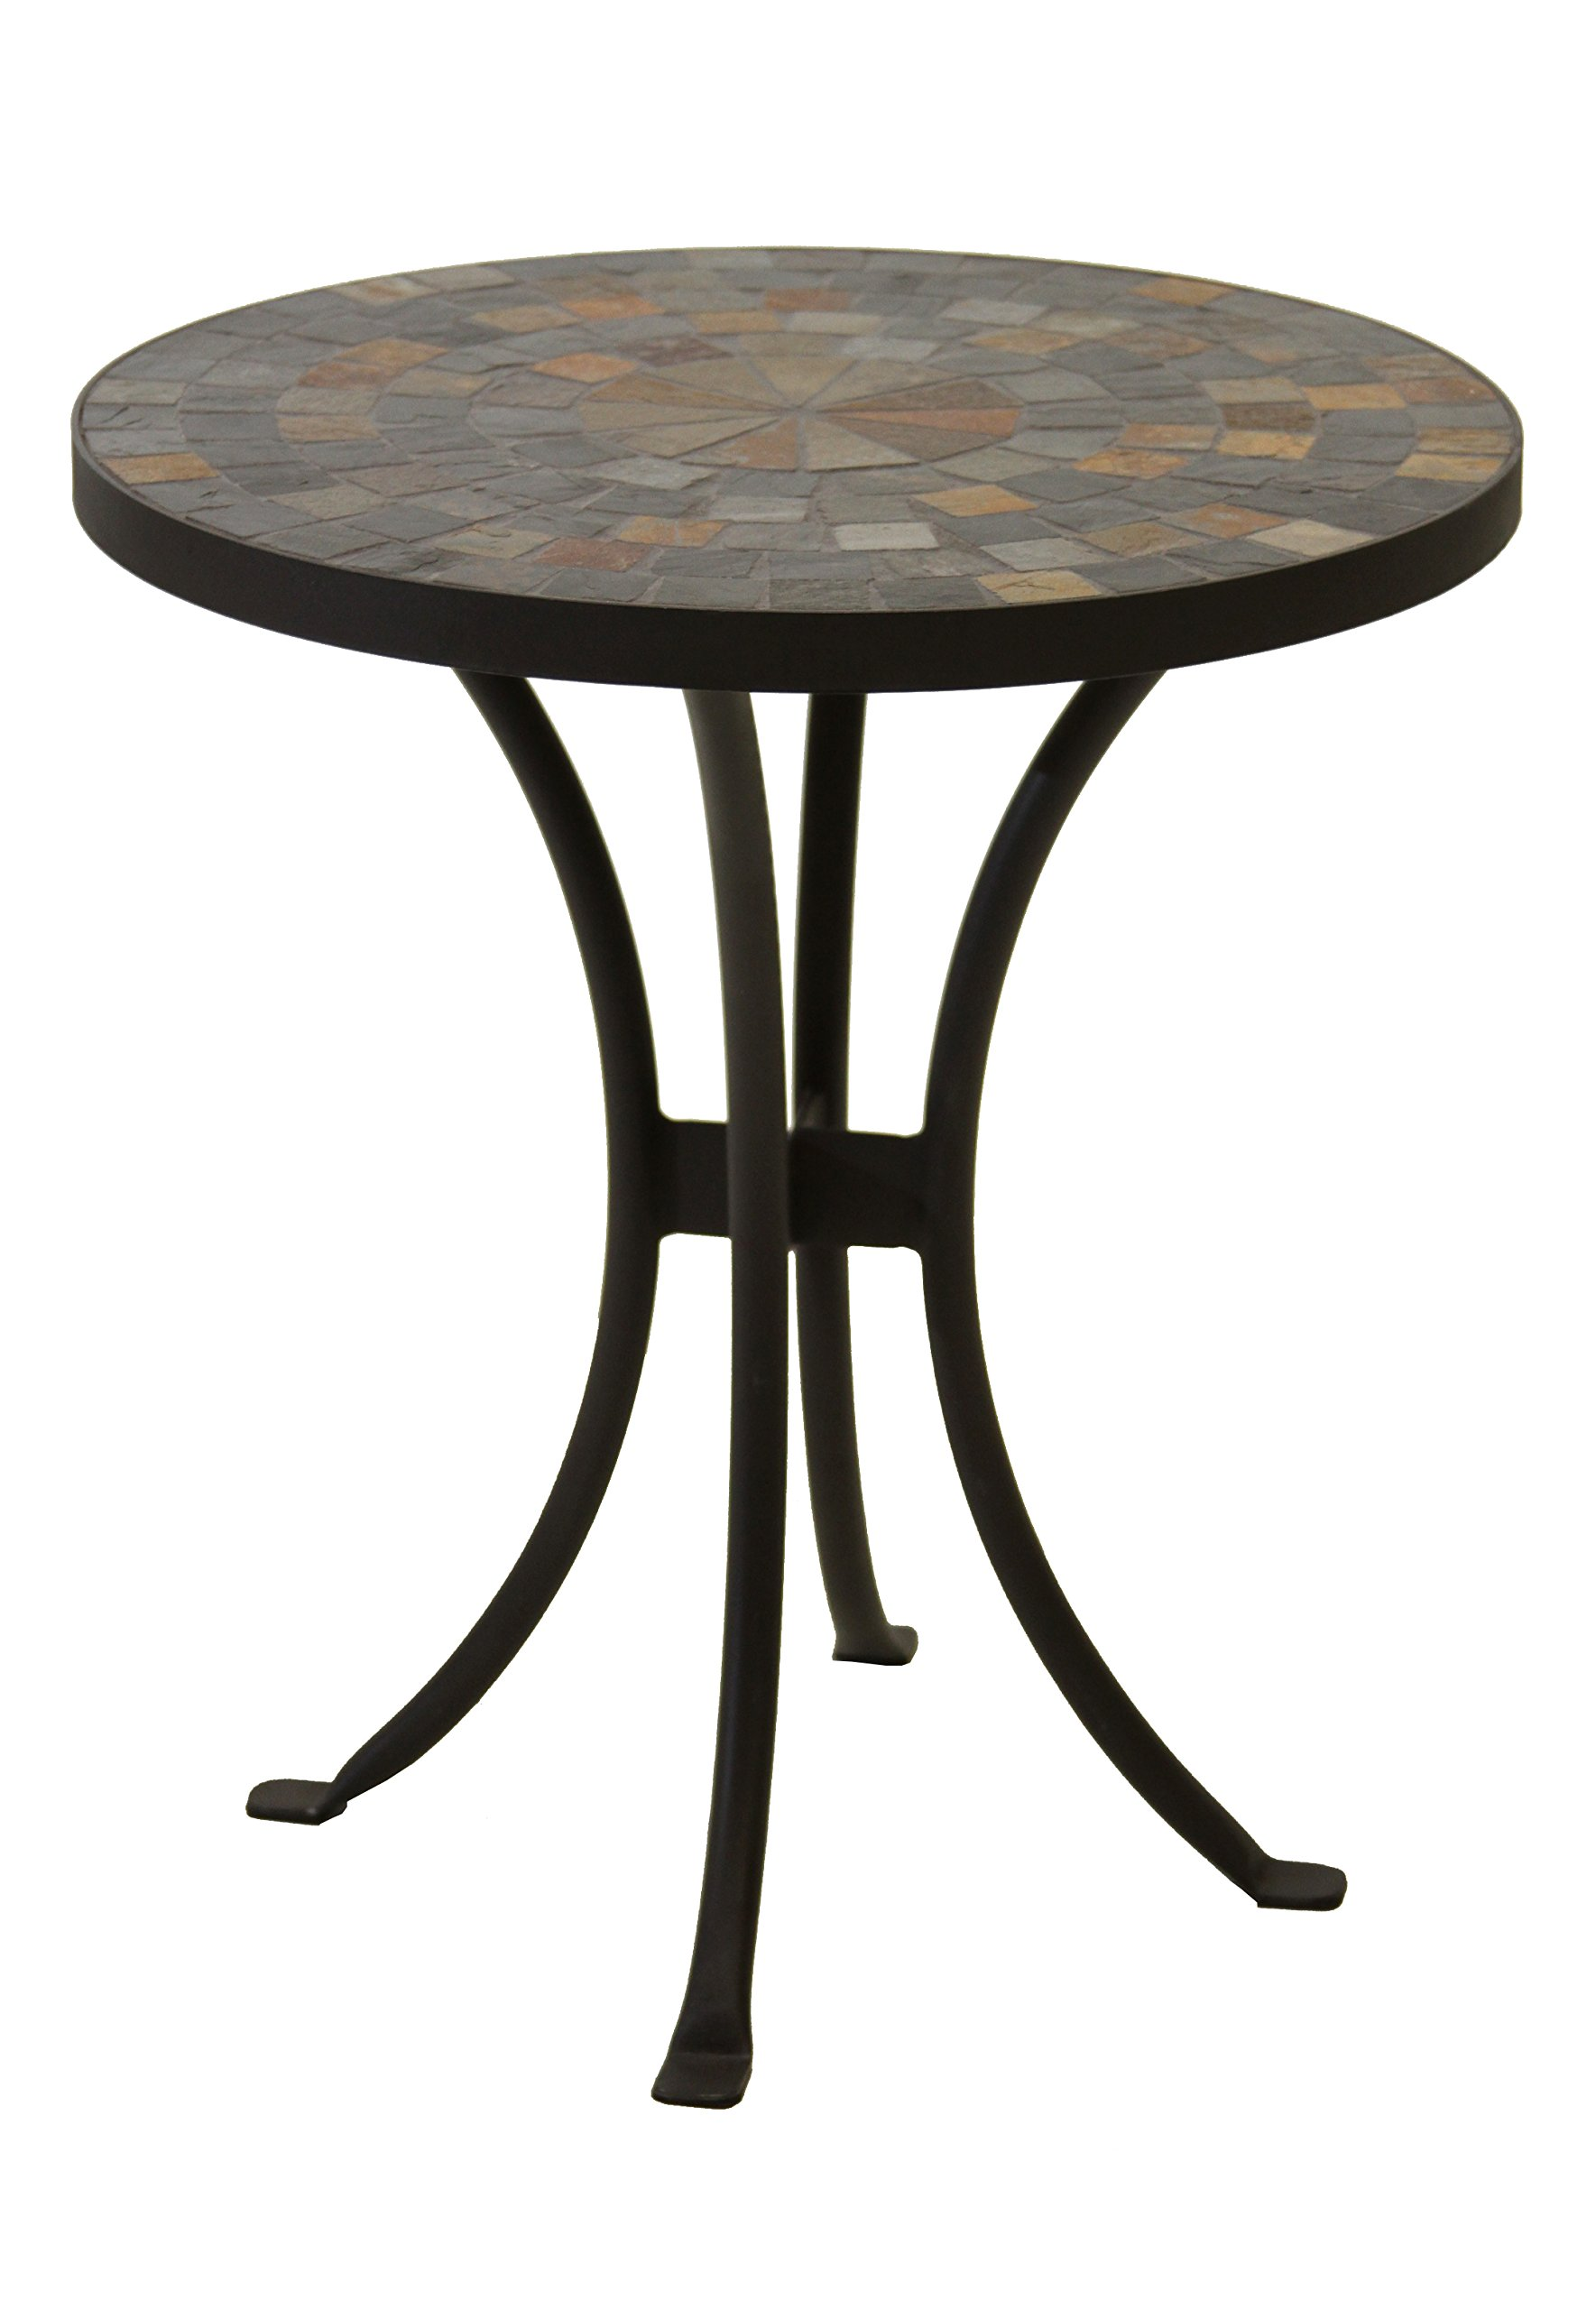 mosaic table garden find line bella green outdoor accent get quotations interiors llc side inch tall plant stand wide threshold wood circular patio furniture covers ashley round